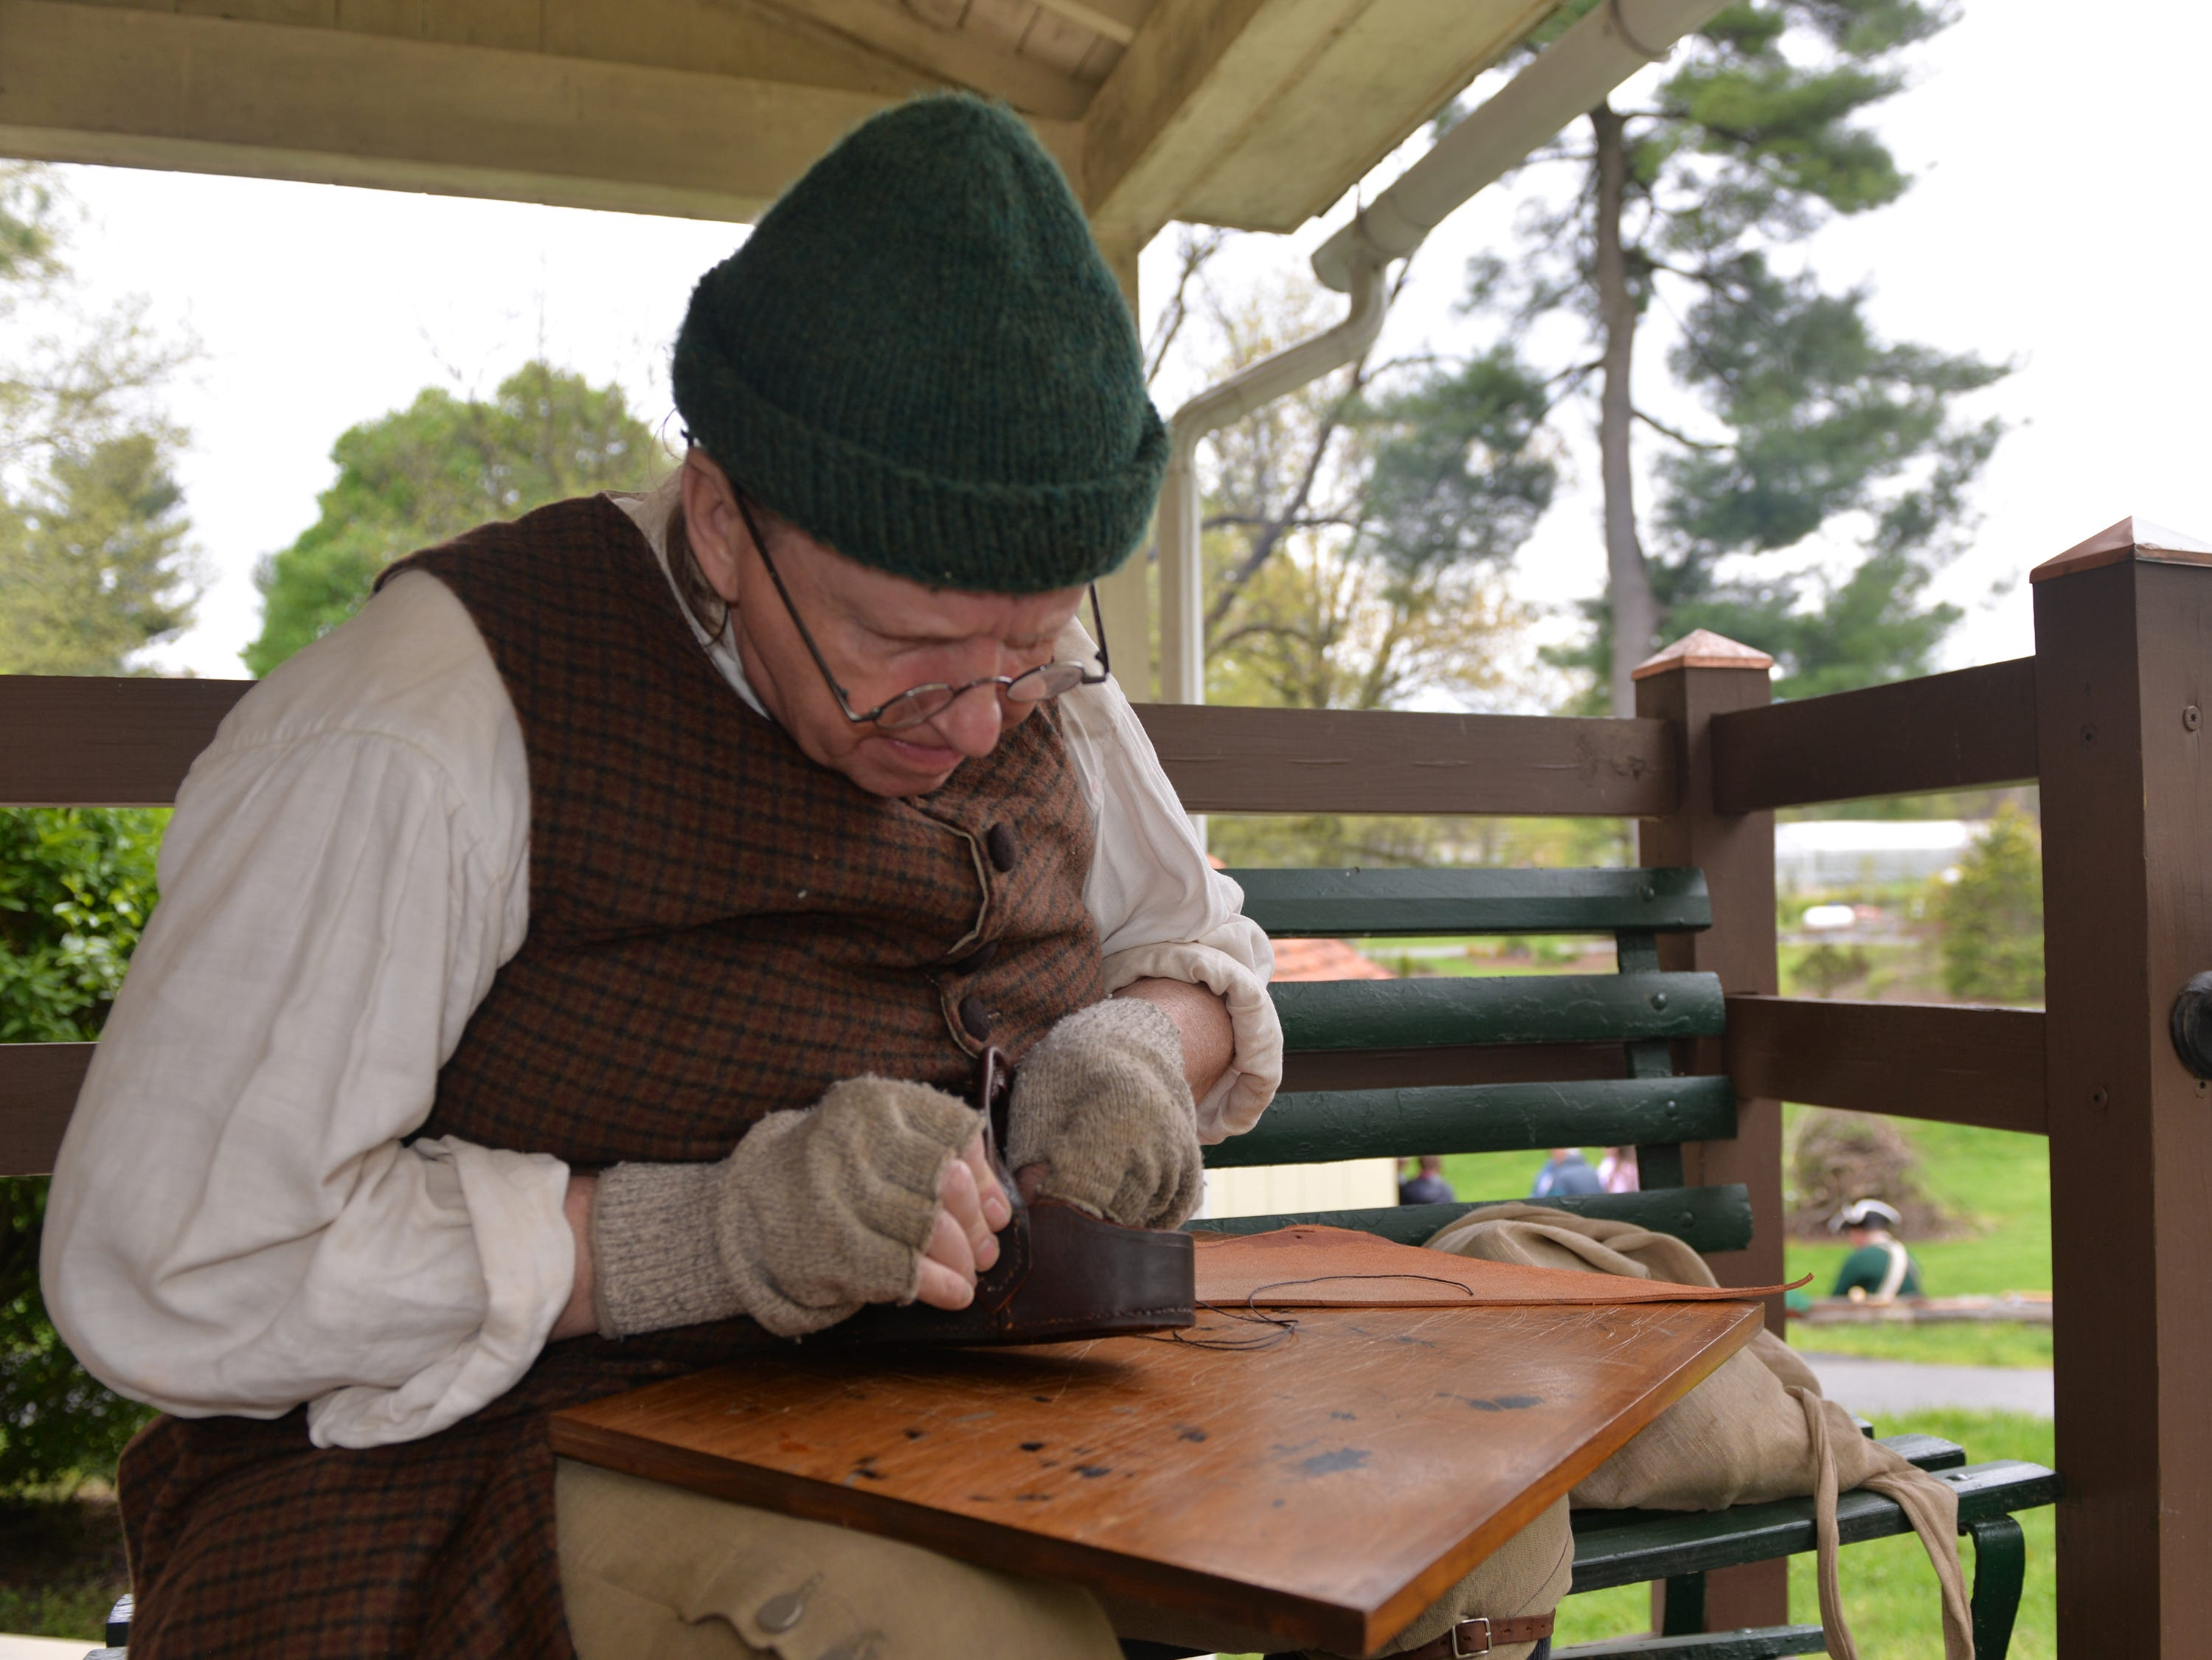 Brian Beamesderfer portrayed a cordwainer and discussed his trade while crafting a leather key basket at The Conrad Weiser Homestead at Womelsdorf, PA during the  'Making Sense of History' living history program held on Sunday, April 28, 2019.